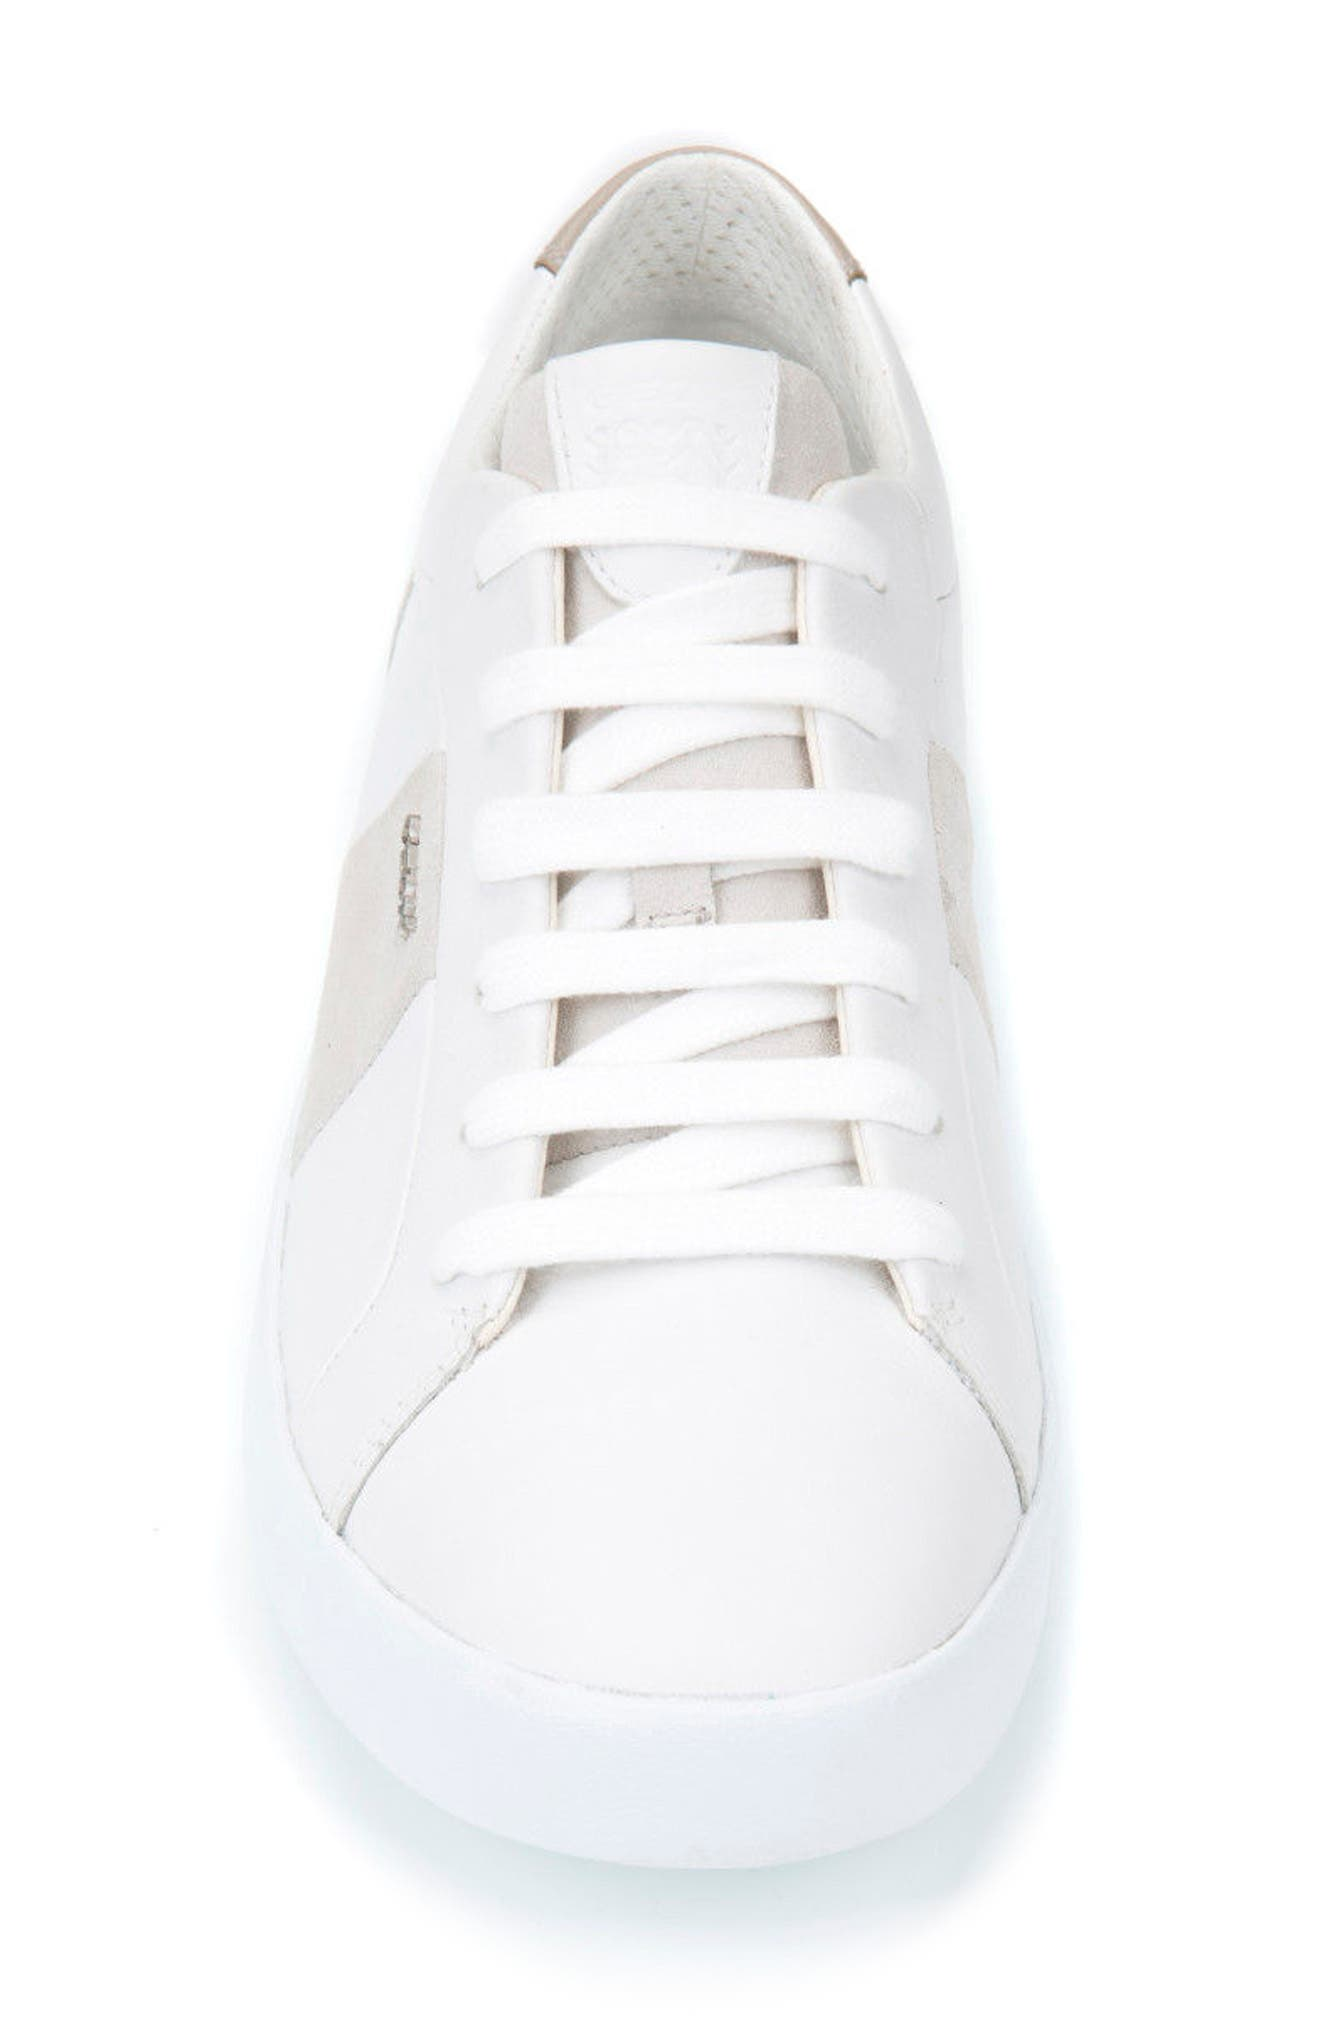 Smart 78 Sneaker,                             Alternate thumbnail 4, color,                             White/ Papyrus Leather